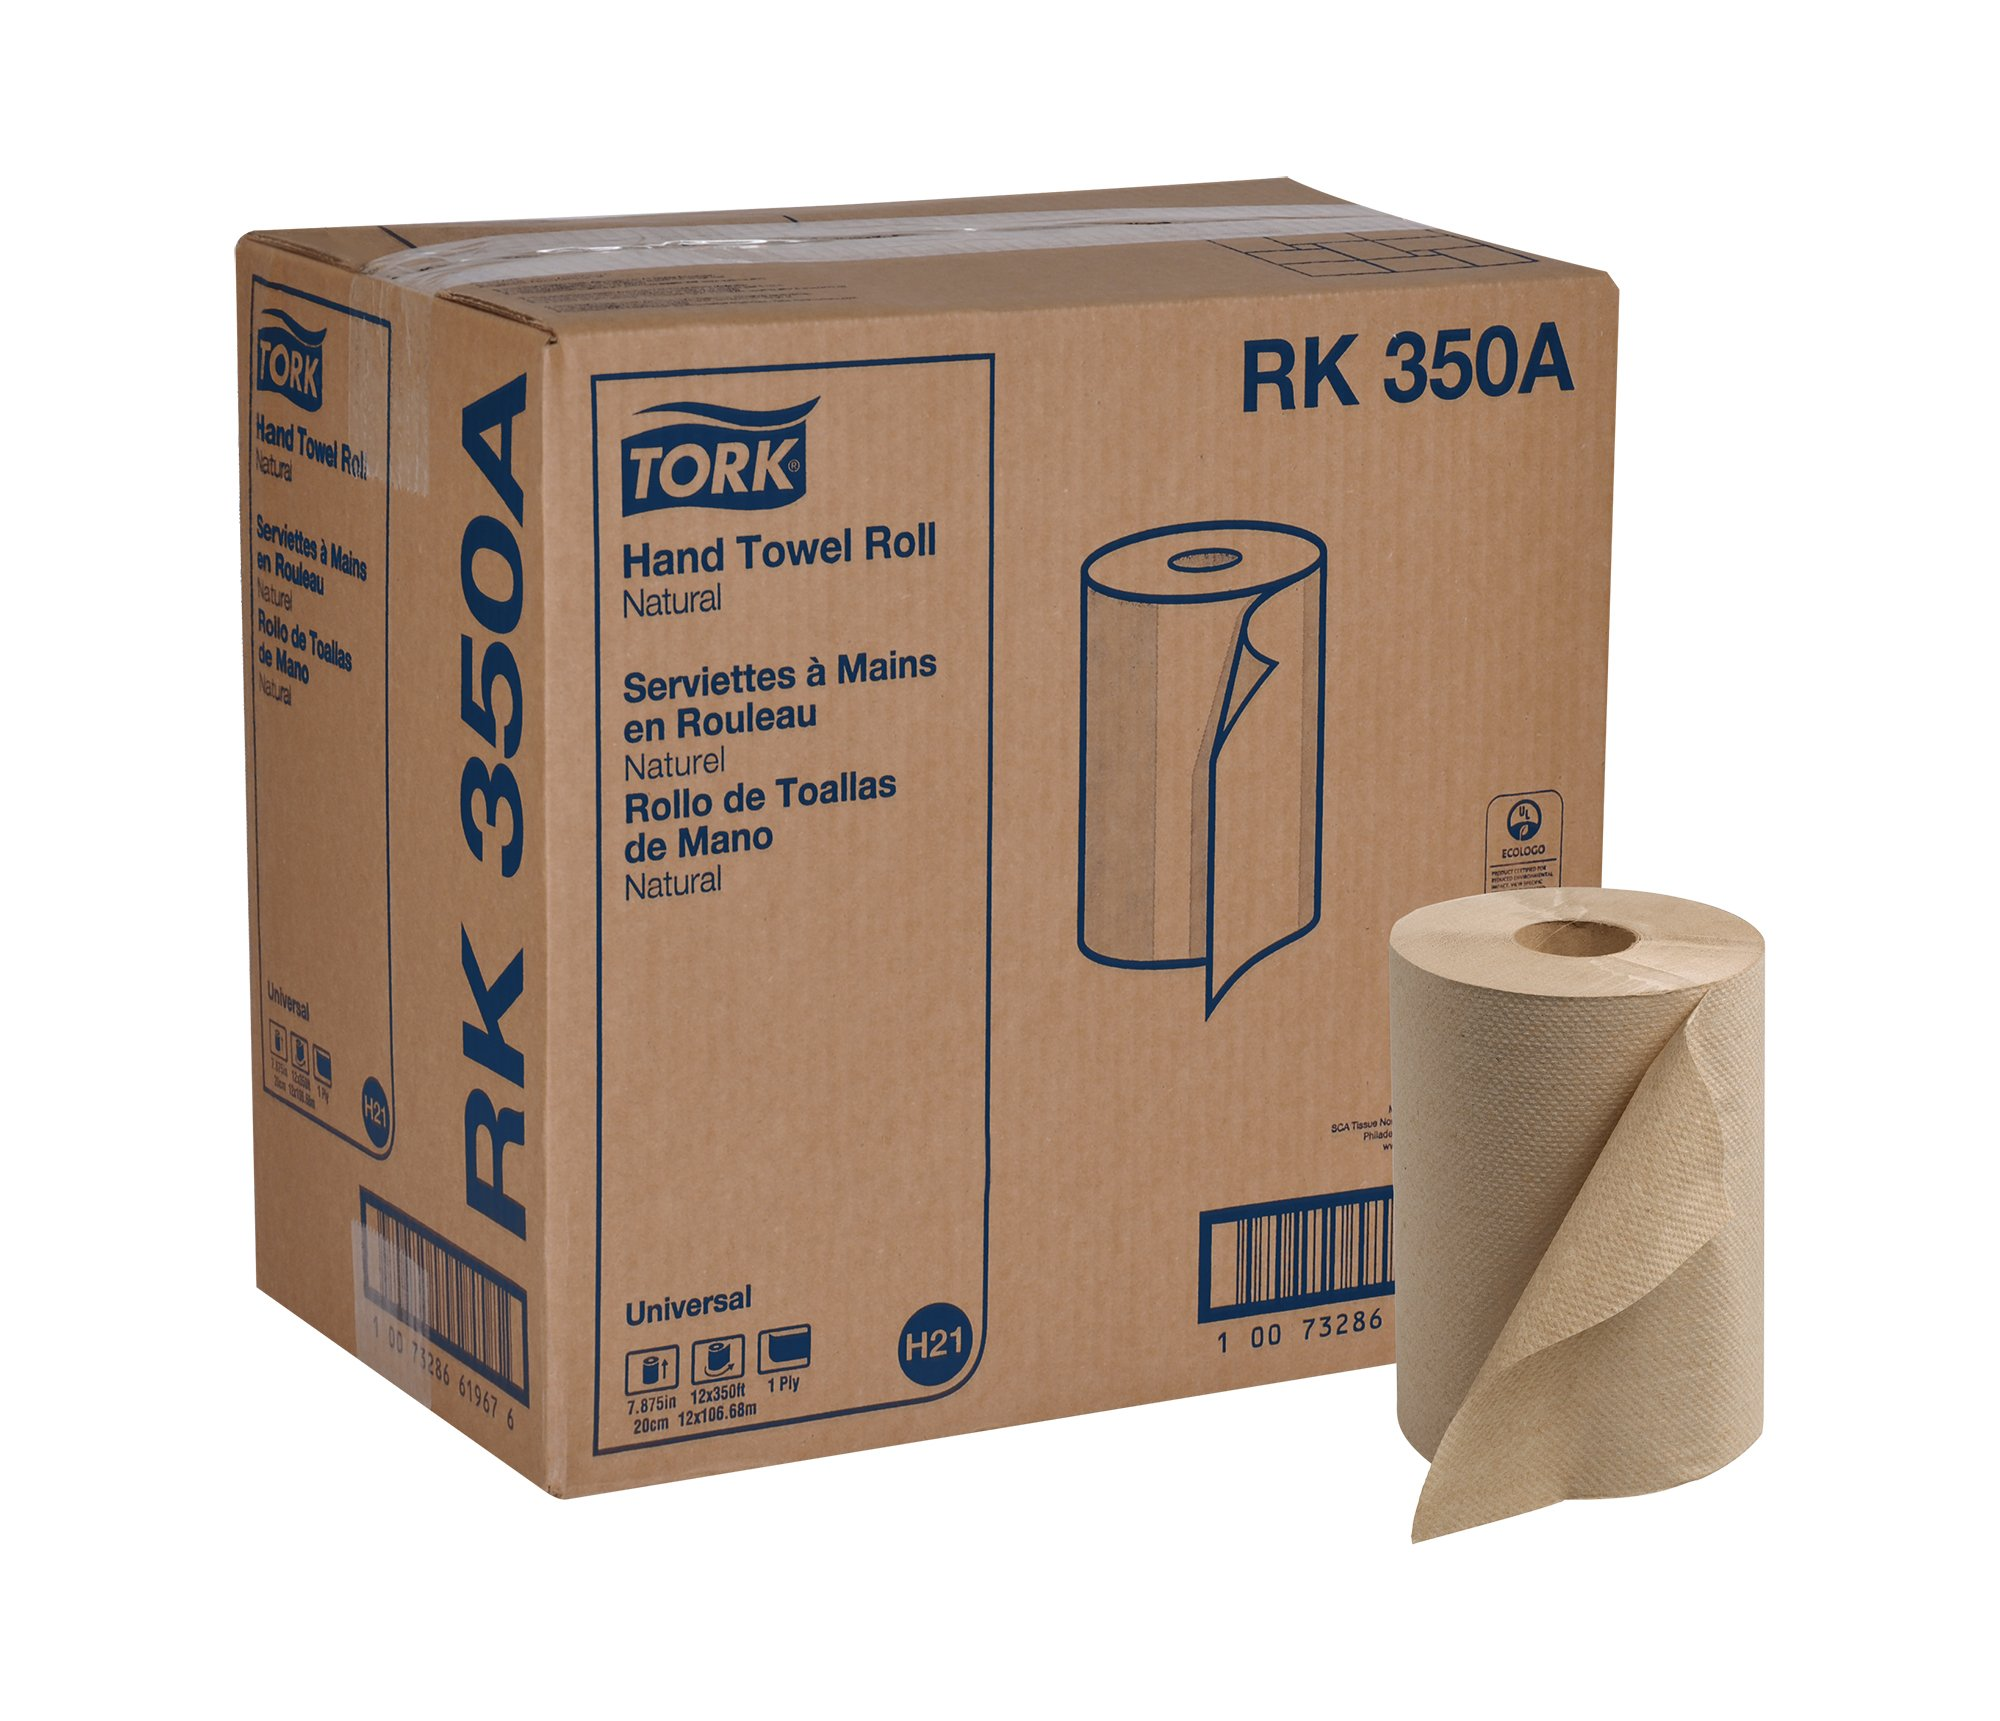 Tork Universal RK350A Hardwound Paper Roll Towel, 1-Ply, 7.87'' Width x 350' Length, Natural, Green Seal Certified (Case of 12 Rolls, 350 per Roll, 4,200 Feet)